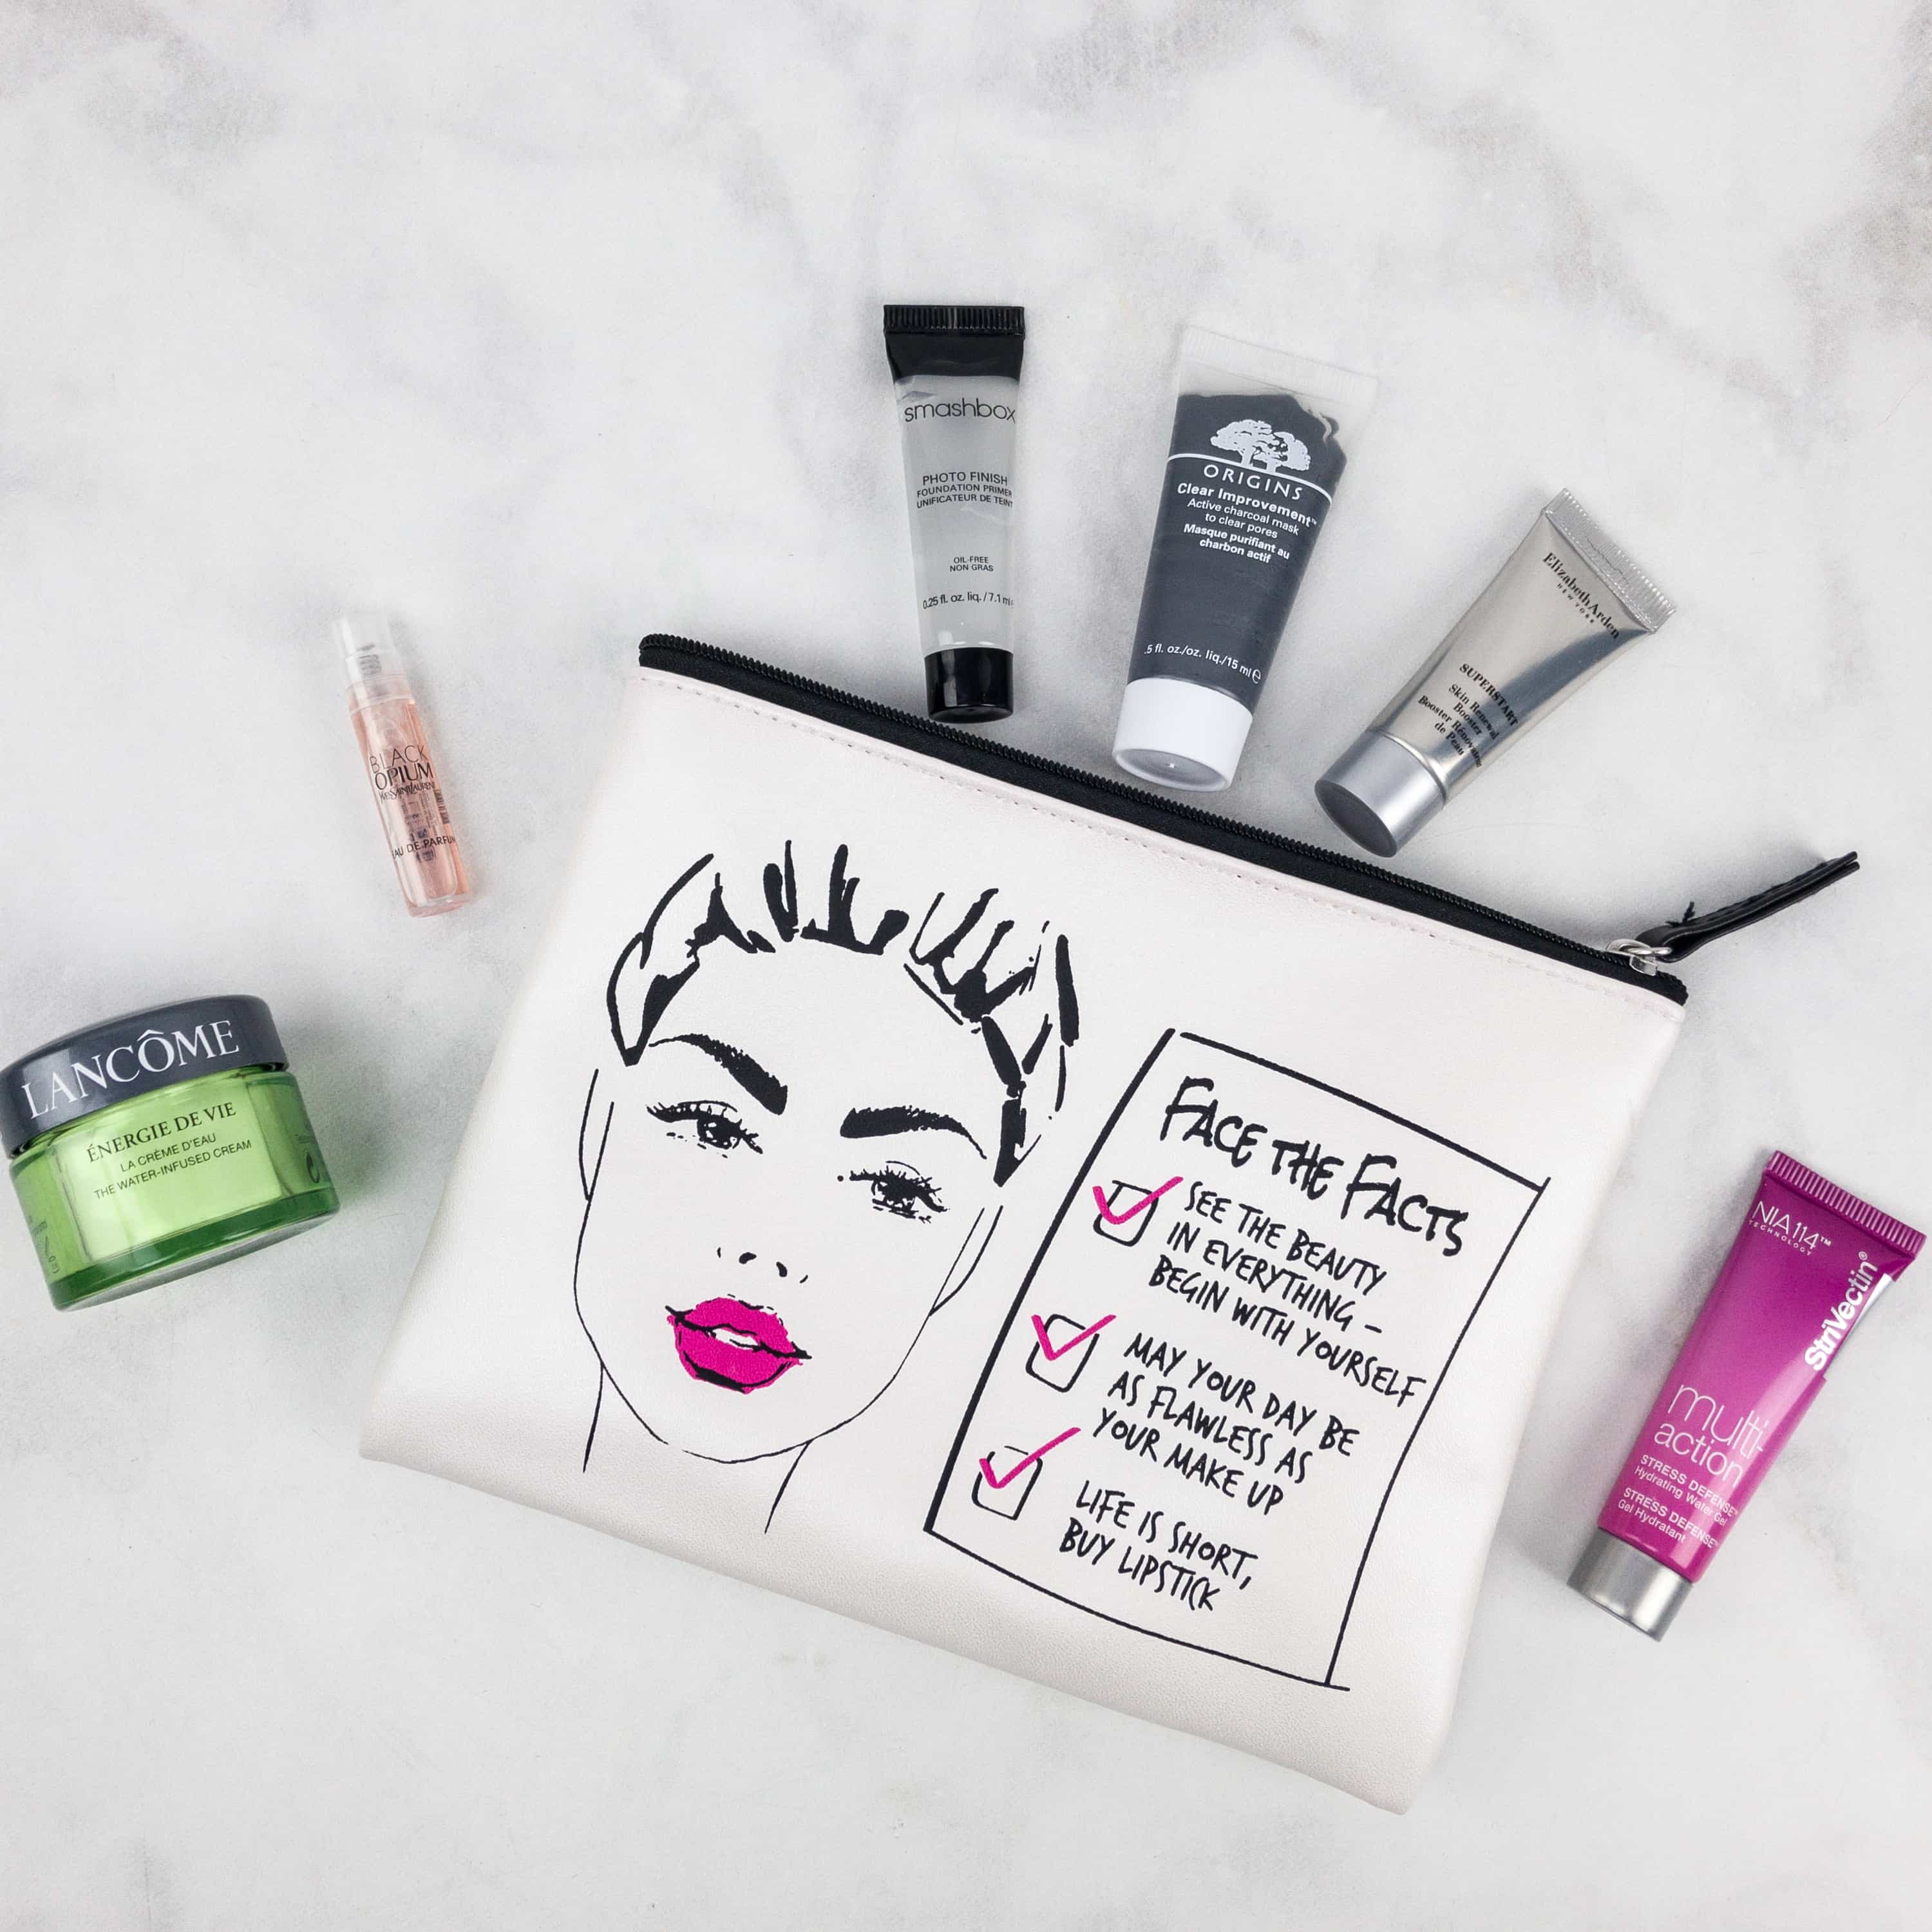 Macy's Beauty Box October 2017 Subscription Box Review